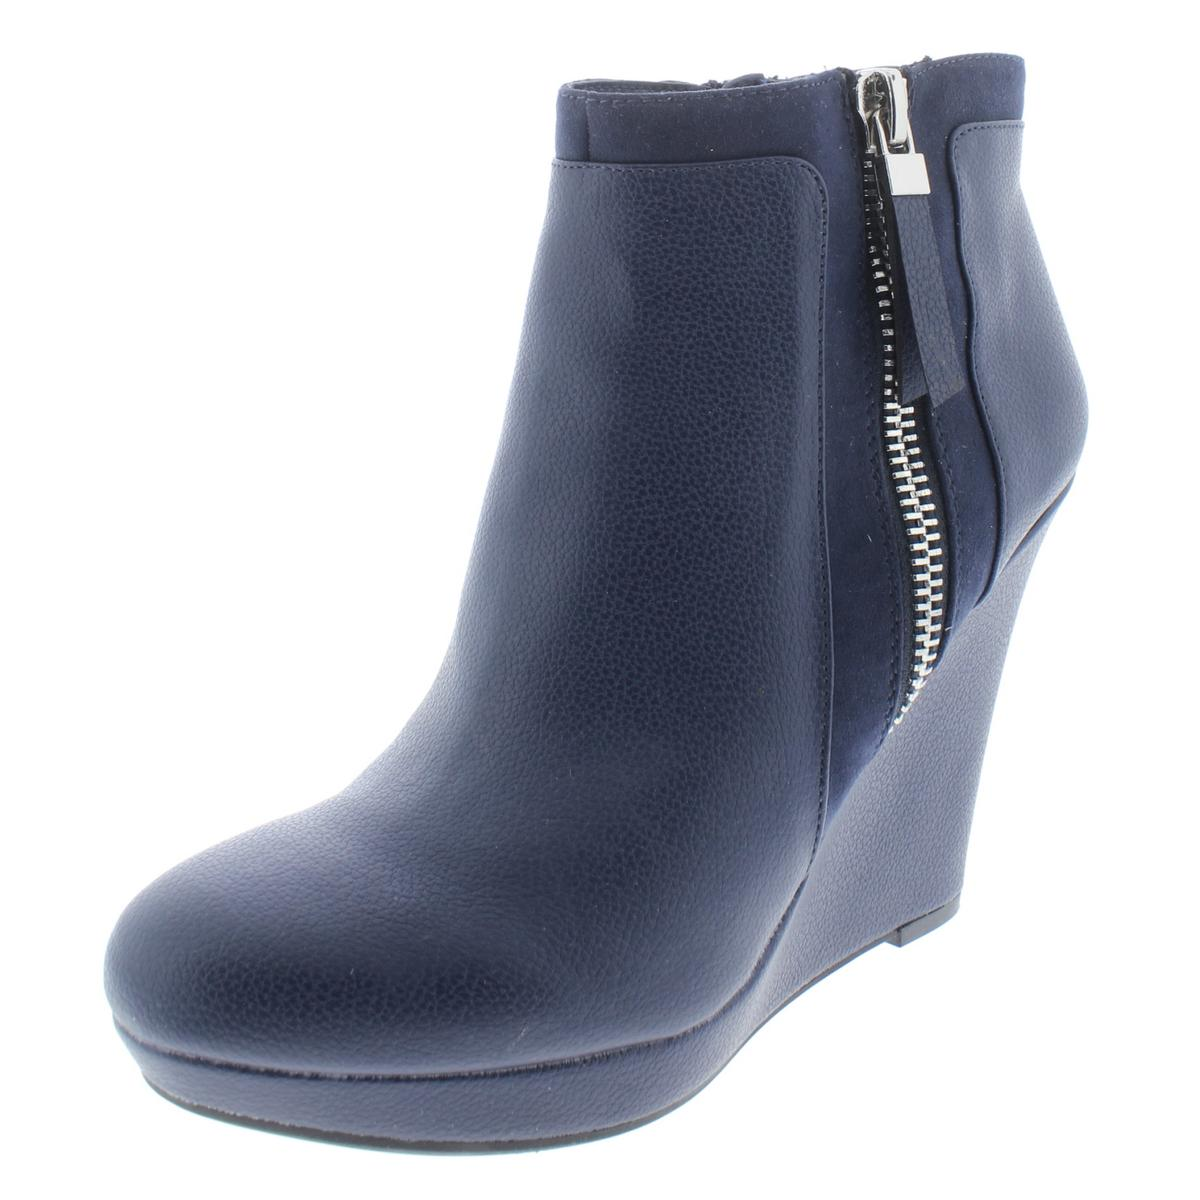 Bar III Womens Navy Faux Leather Wedge Booties shoes 9 Medium (B,M) BHFO 0201